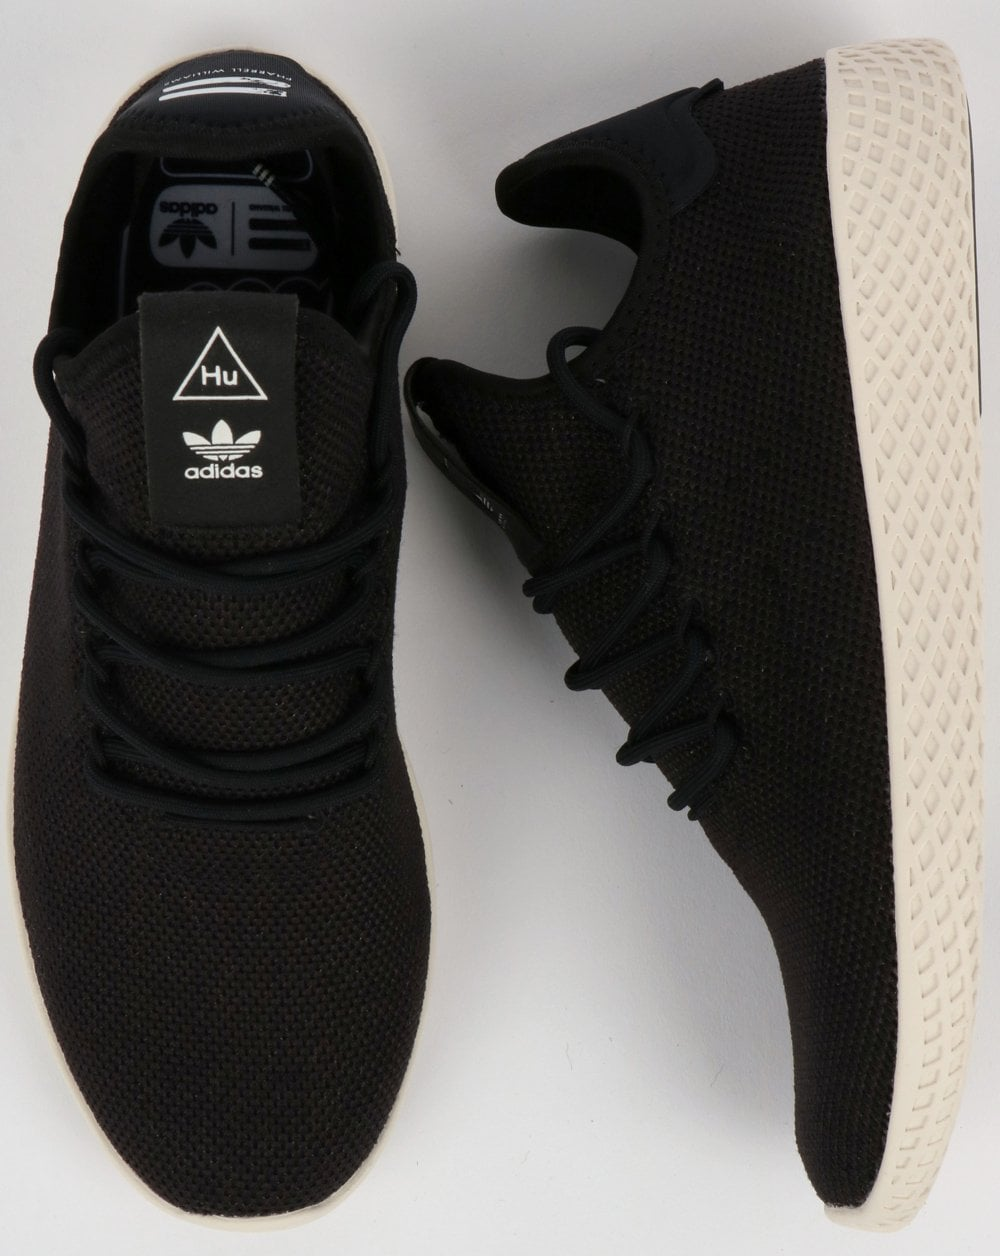 Adidas PW Tennis HU Trainers Black/Black/White